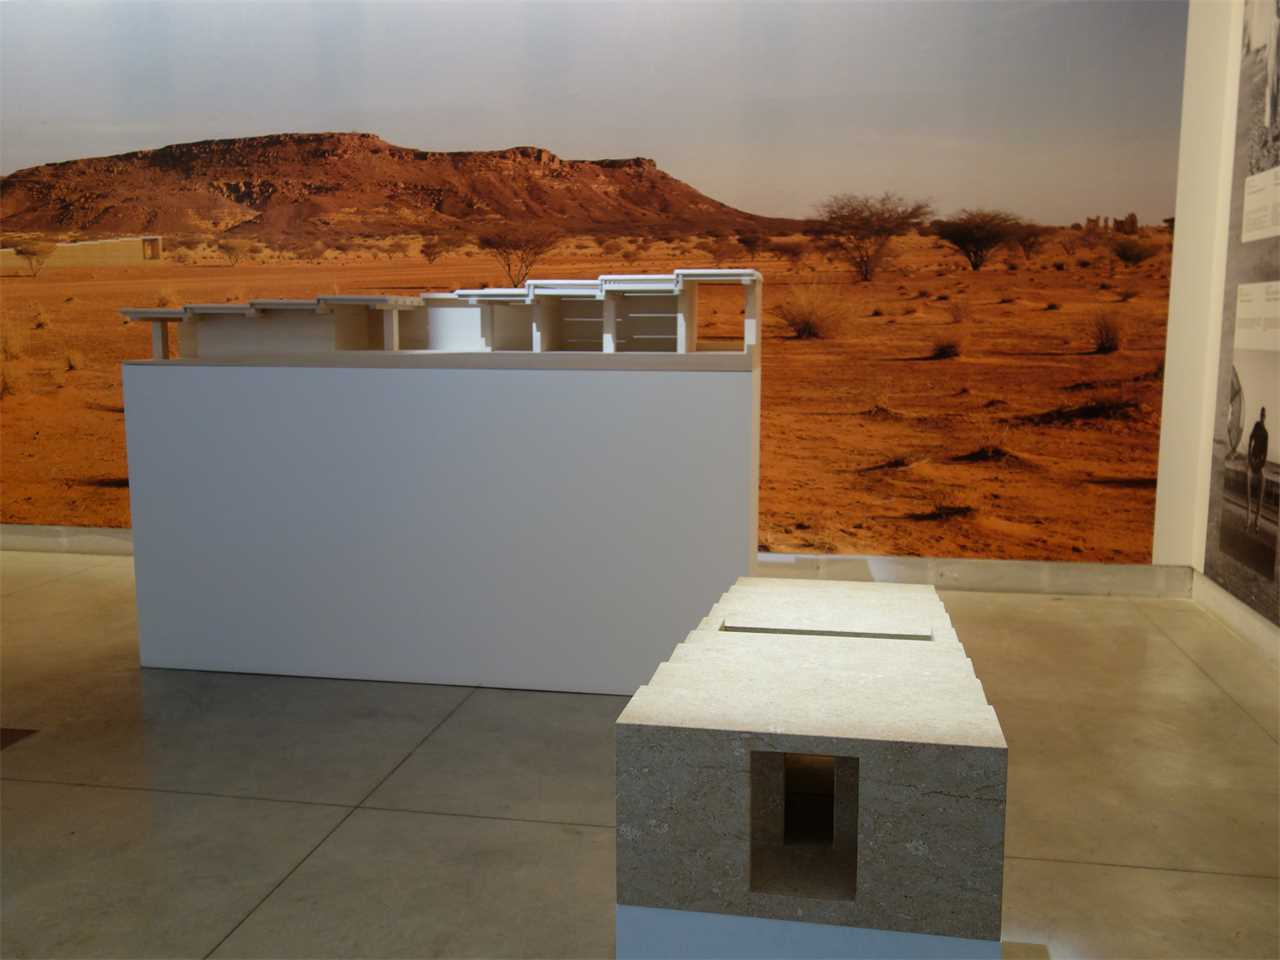 David Chipperfield at 15th International Architecture Exhibition